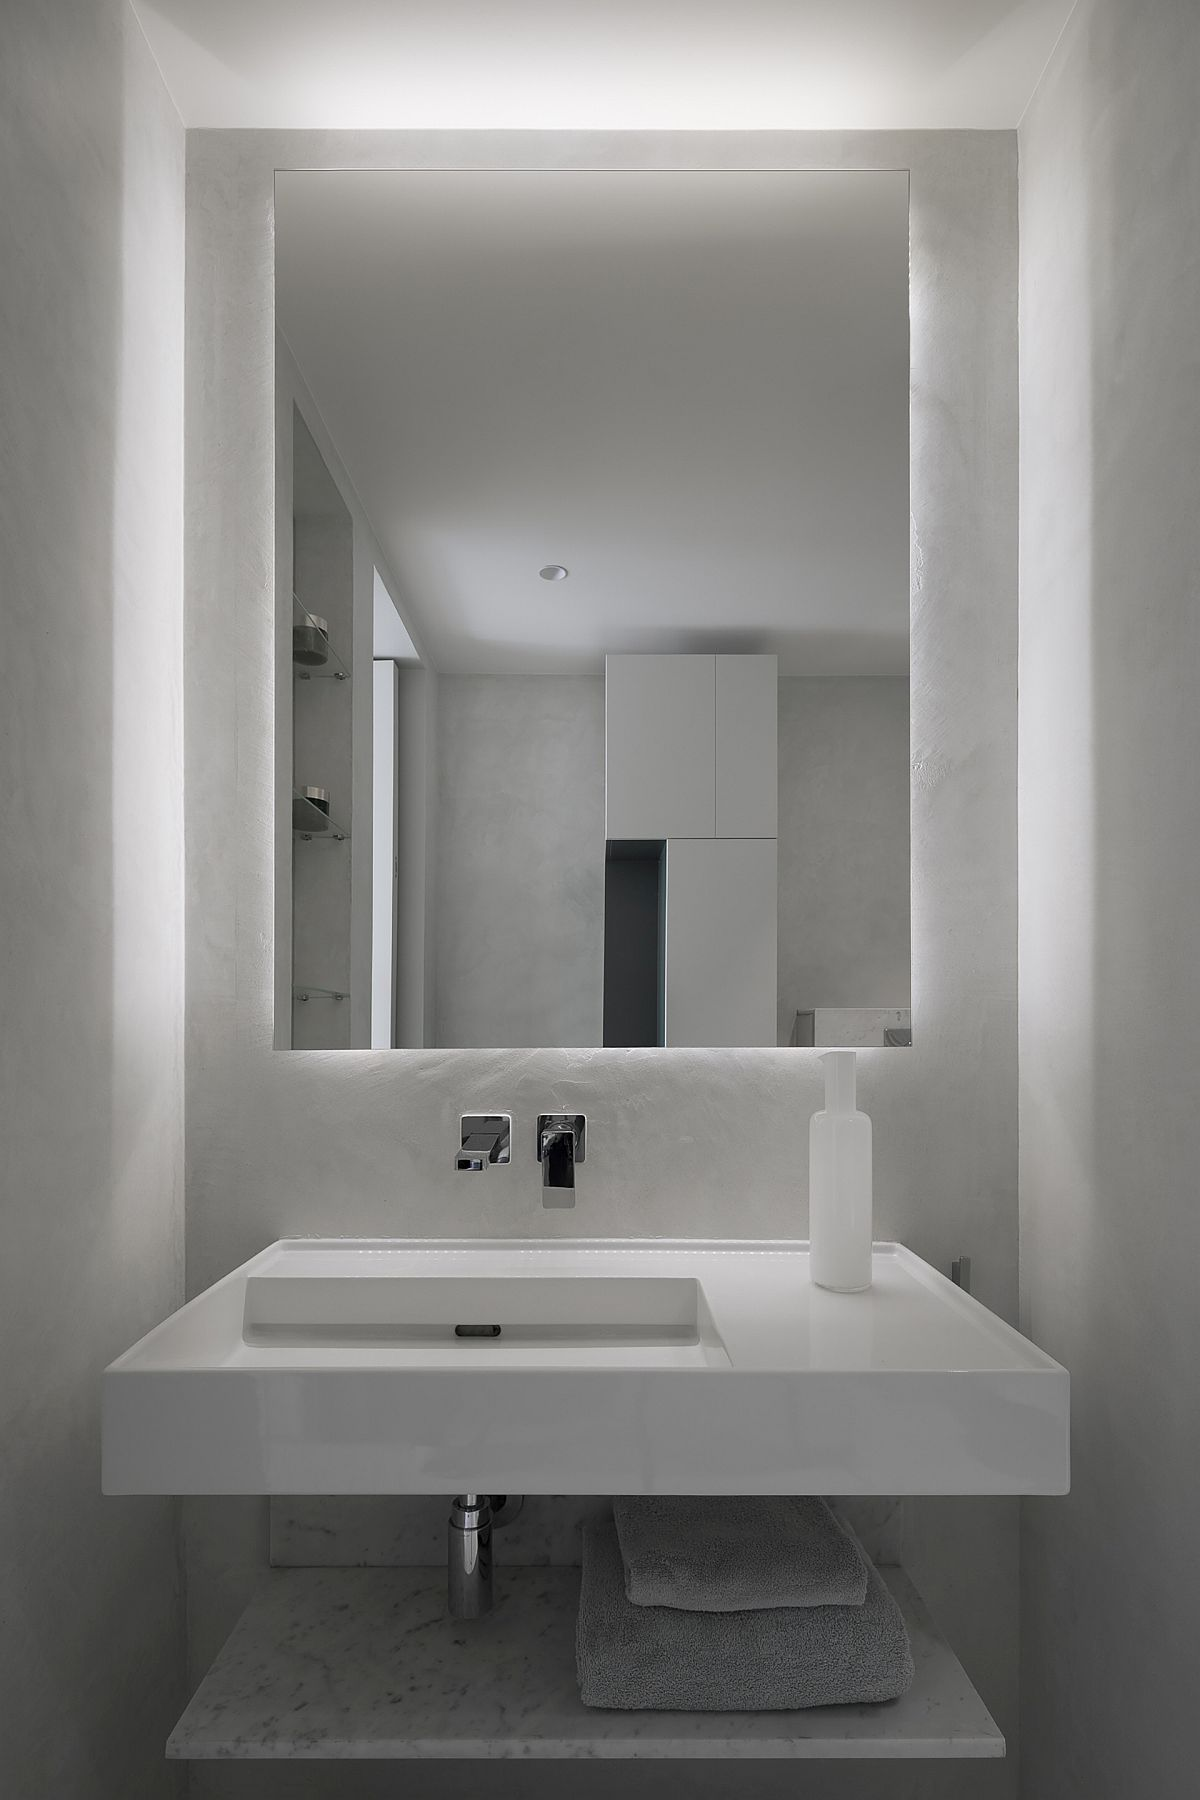 Modest-and-space-savvy-powder-room-with-minimal-style-and-a-neutral-color-scheme-79262